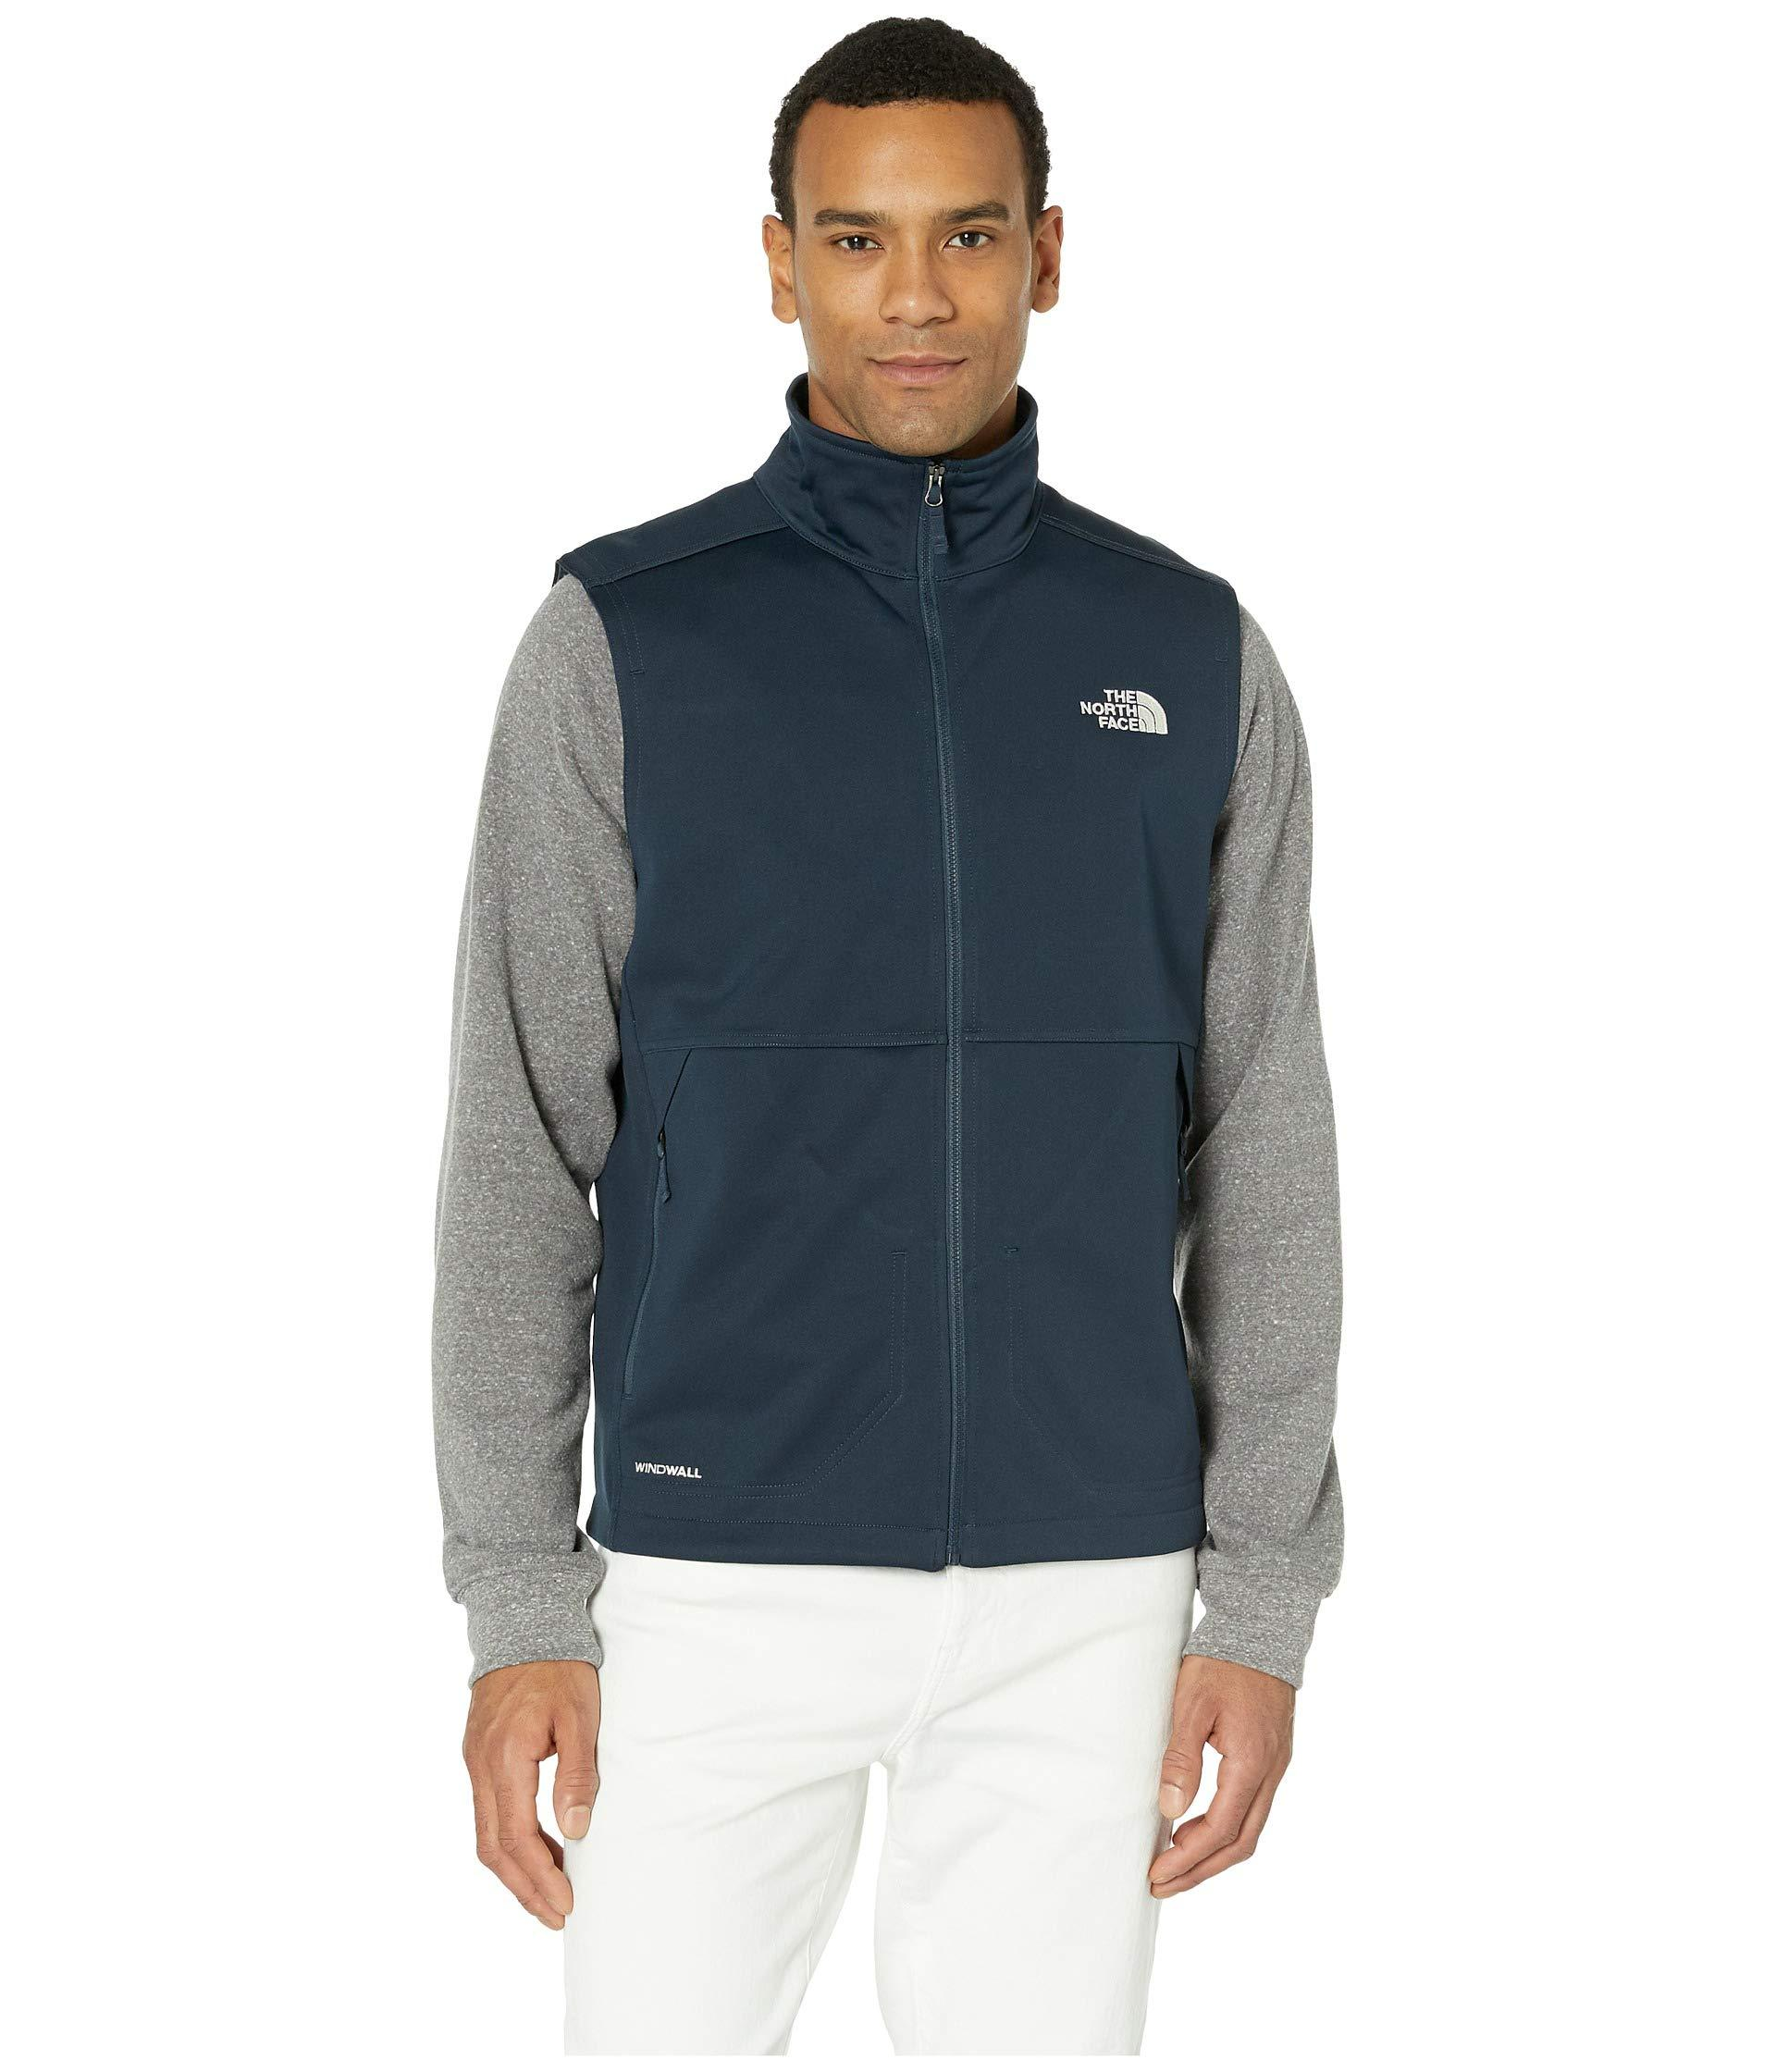 73c391551 Men's Blue Apex Canyonwall Vest